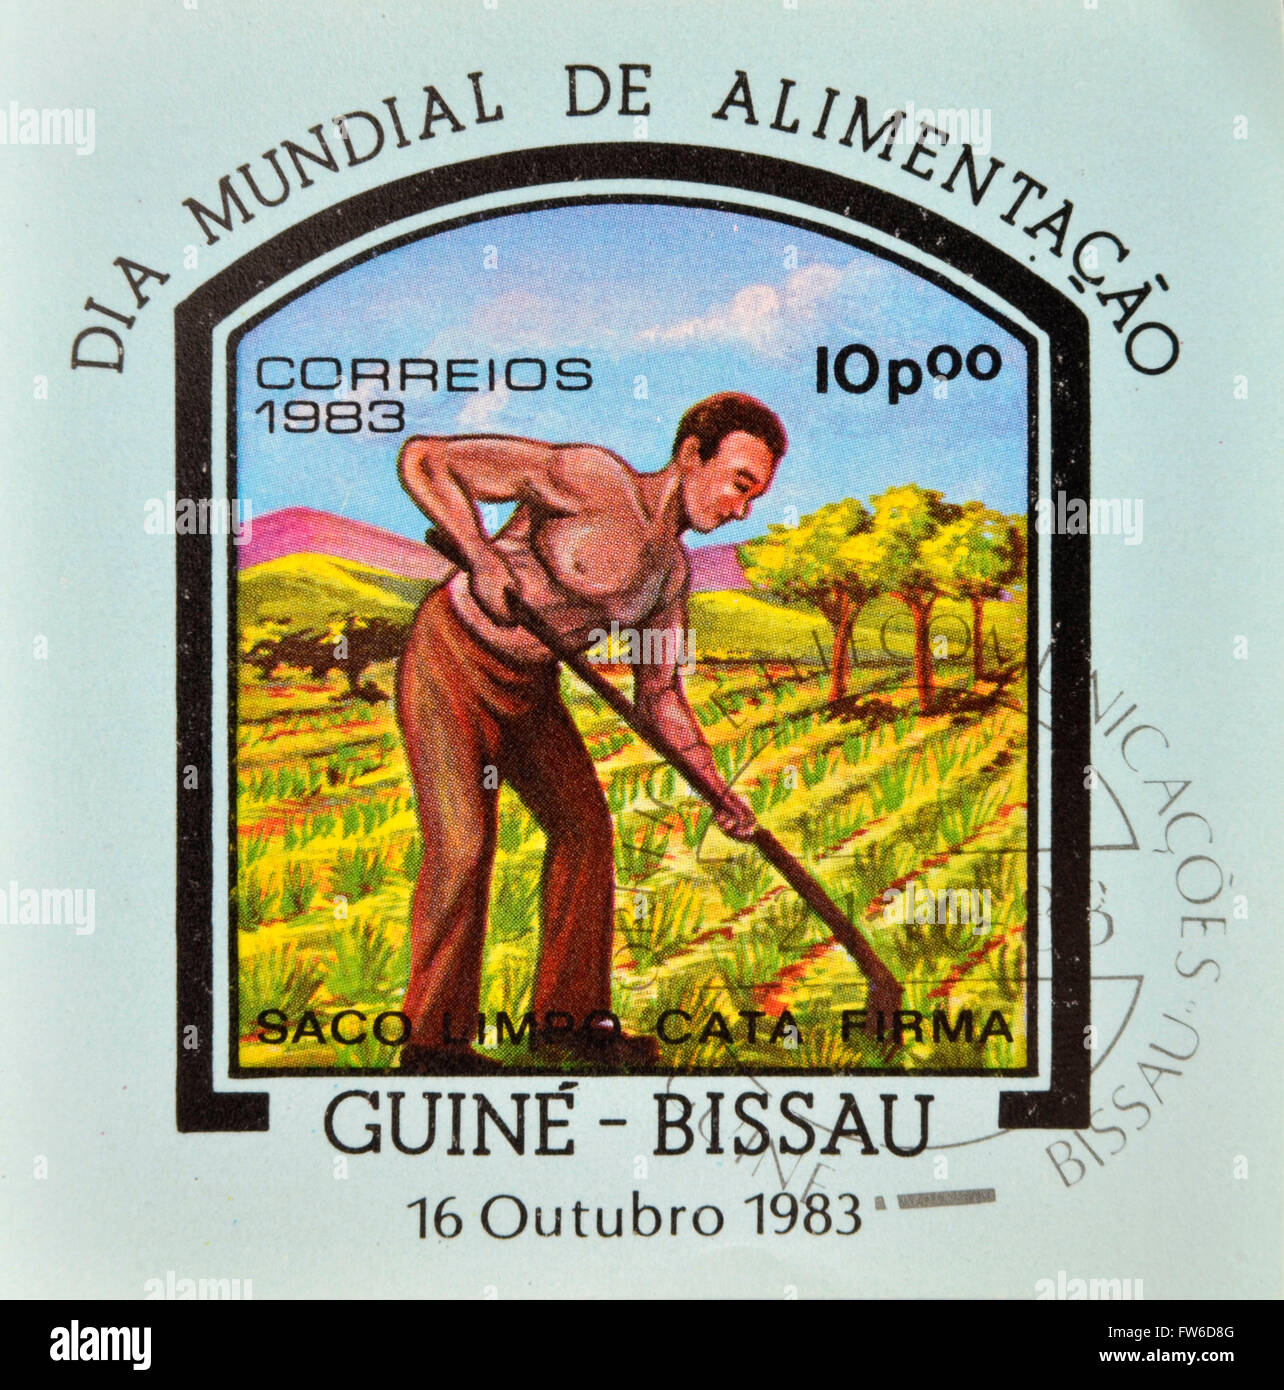 GUINEA-BISSAU - CIRCA 1983: a stamp printed in the Republic of Guinea-Bissau commemorative the world food day, showing - Stock Image